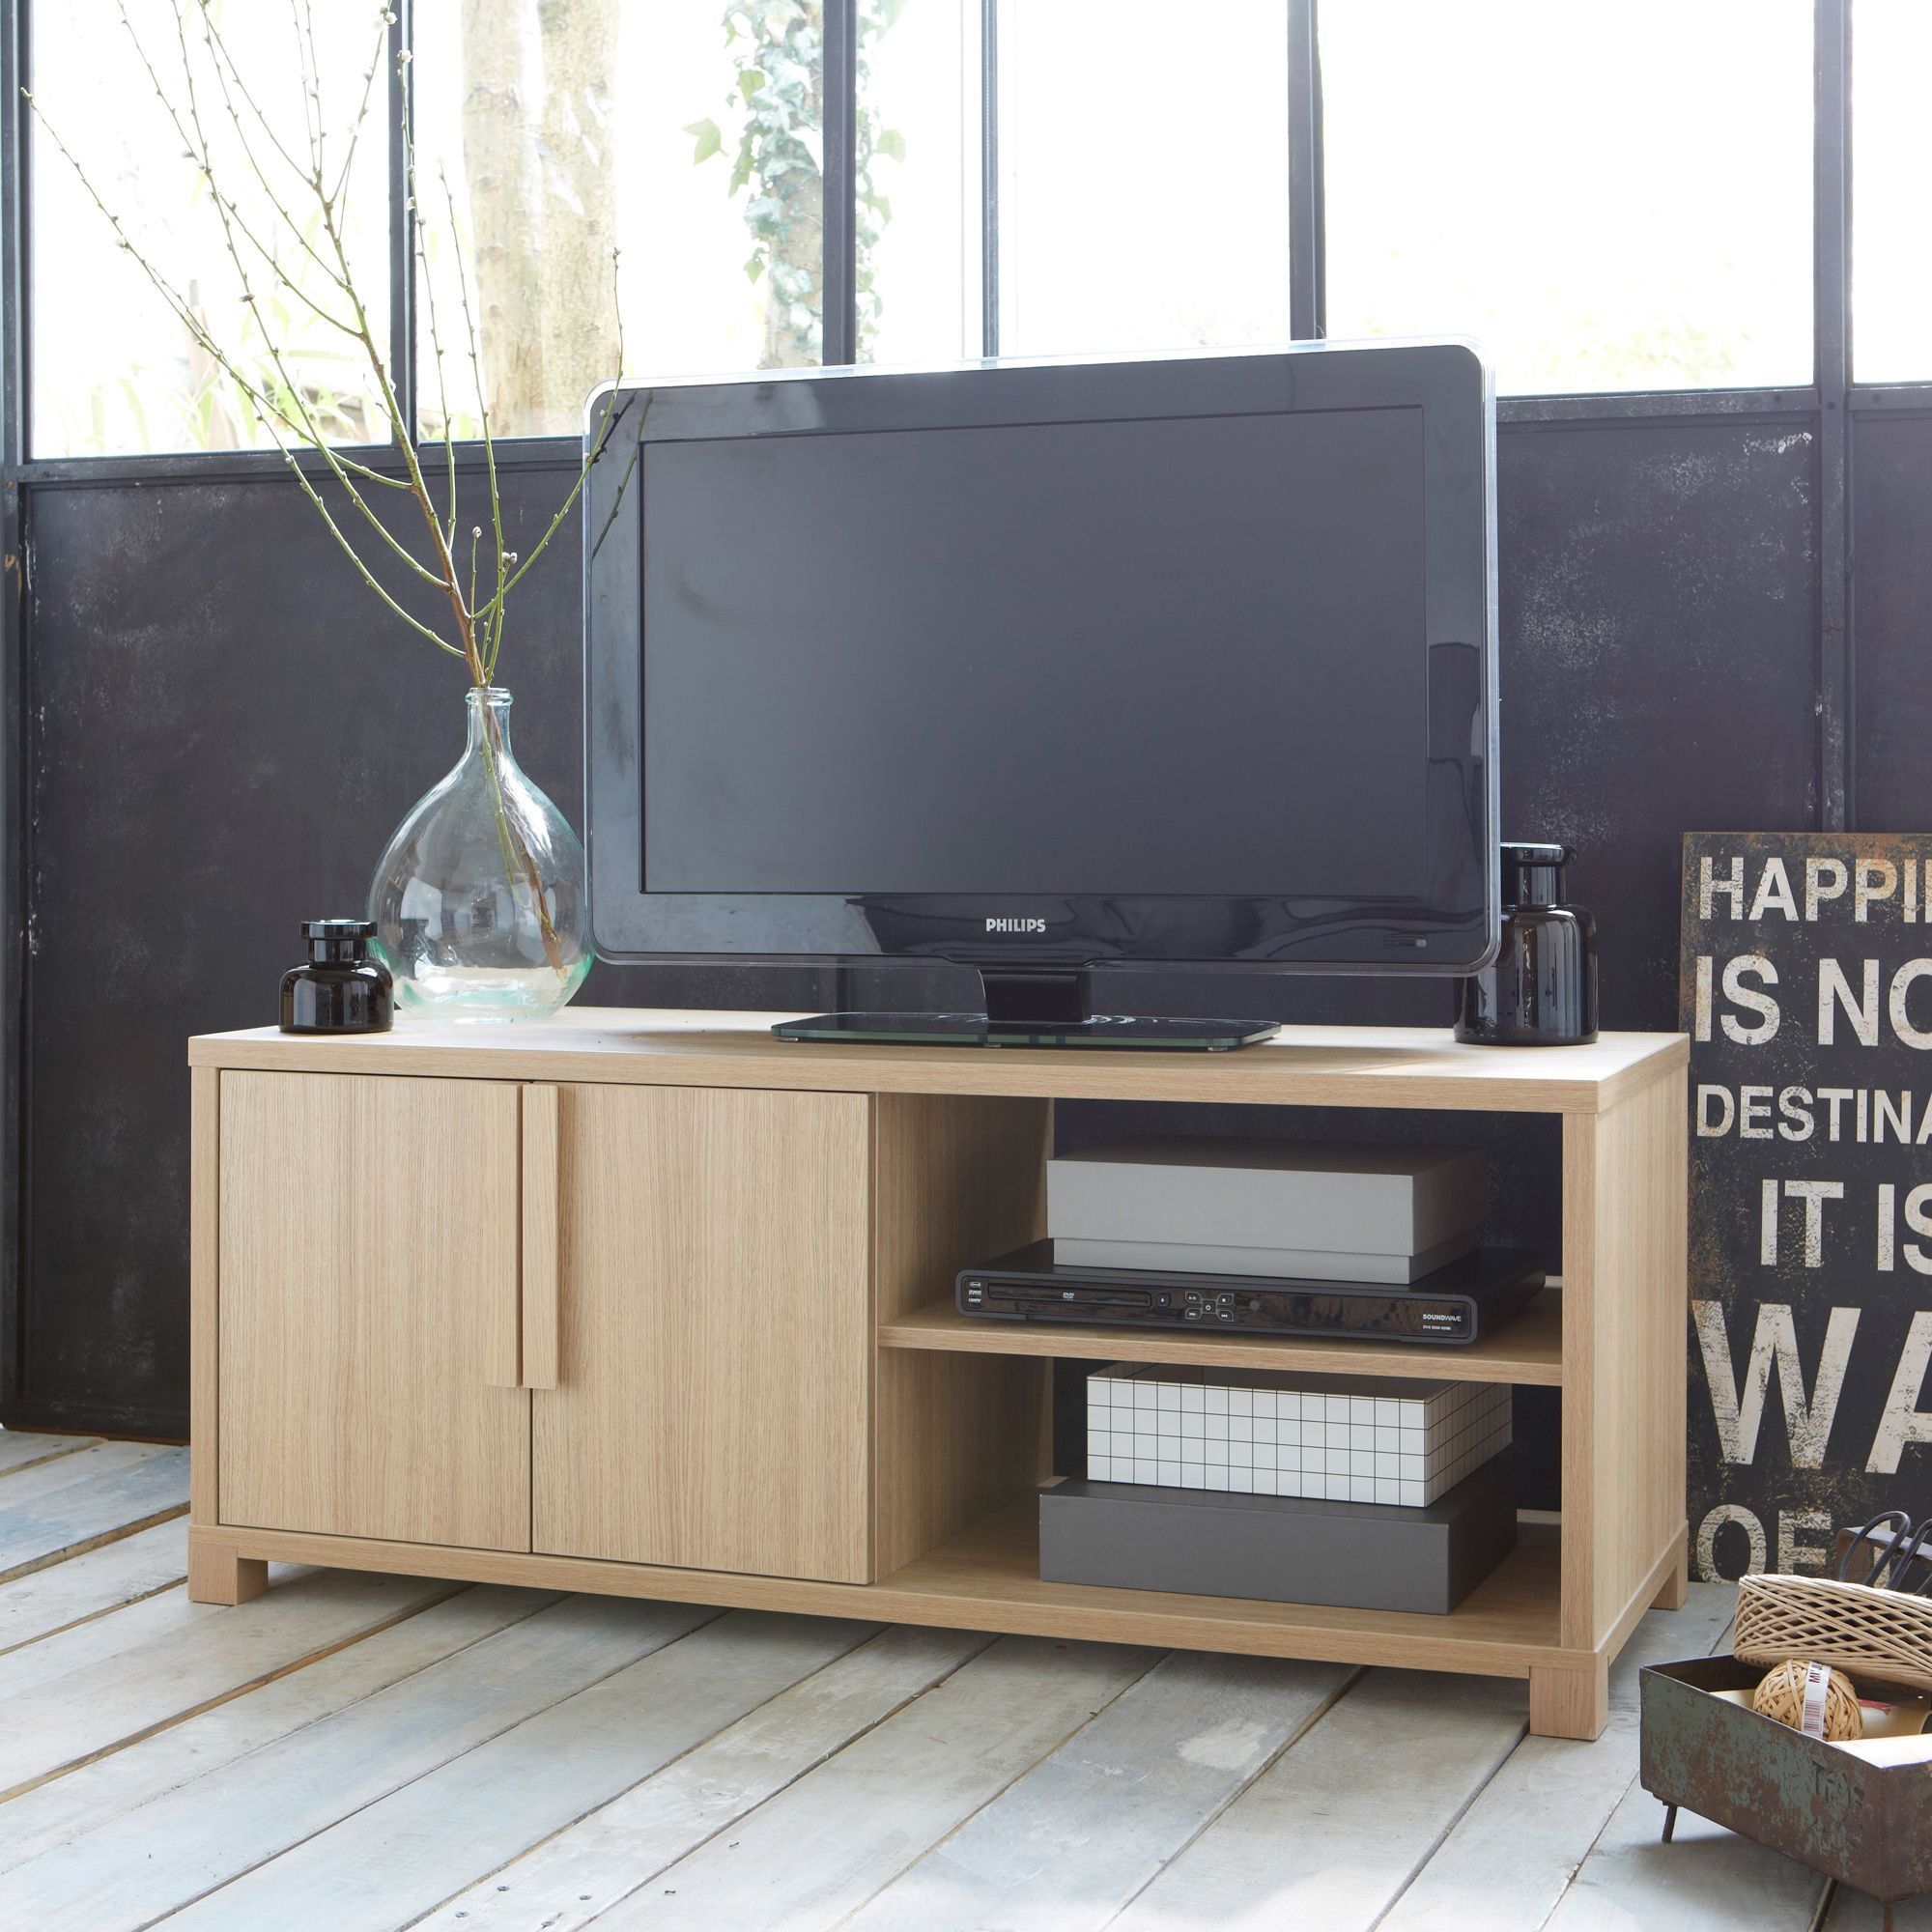 Meuble Banc Tv Hoari 2 Portes 2 Niches 3 Suisses Meubles Tv  # Meuble Banc Tv